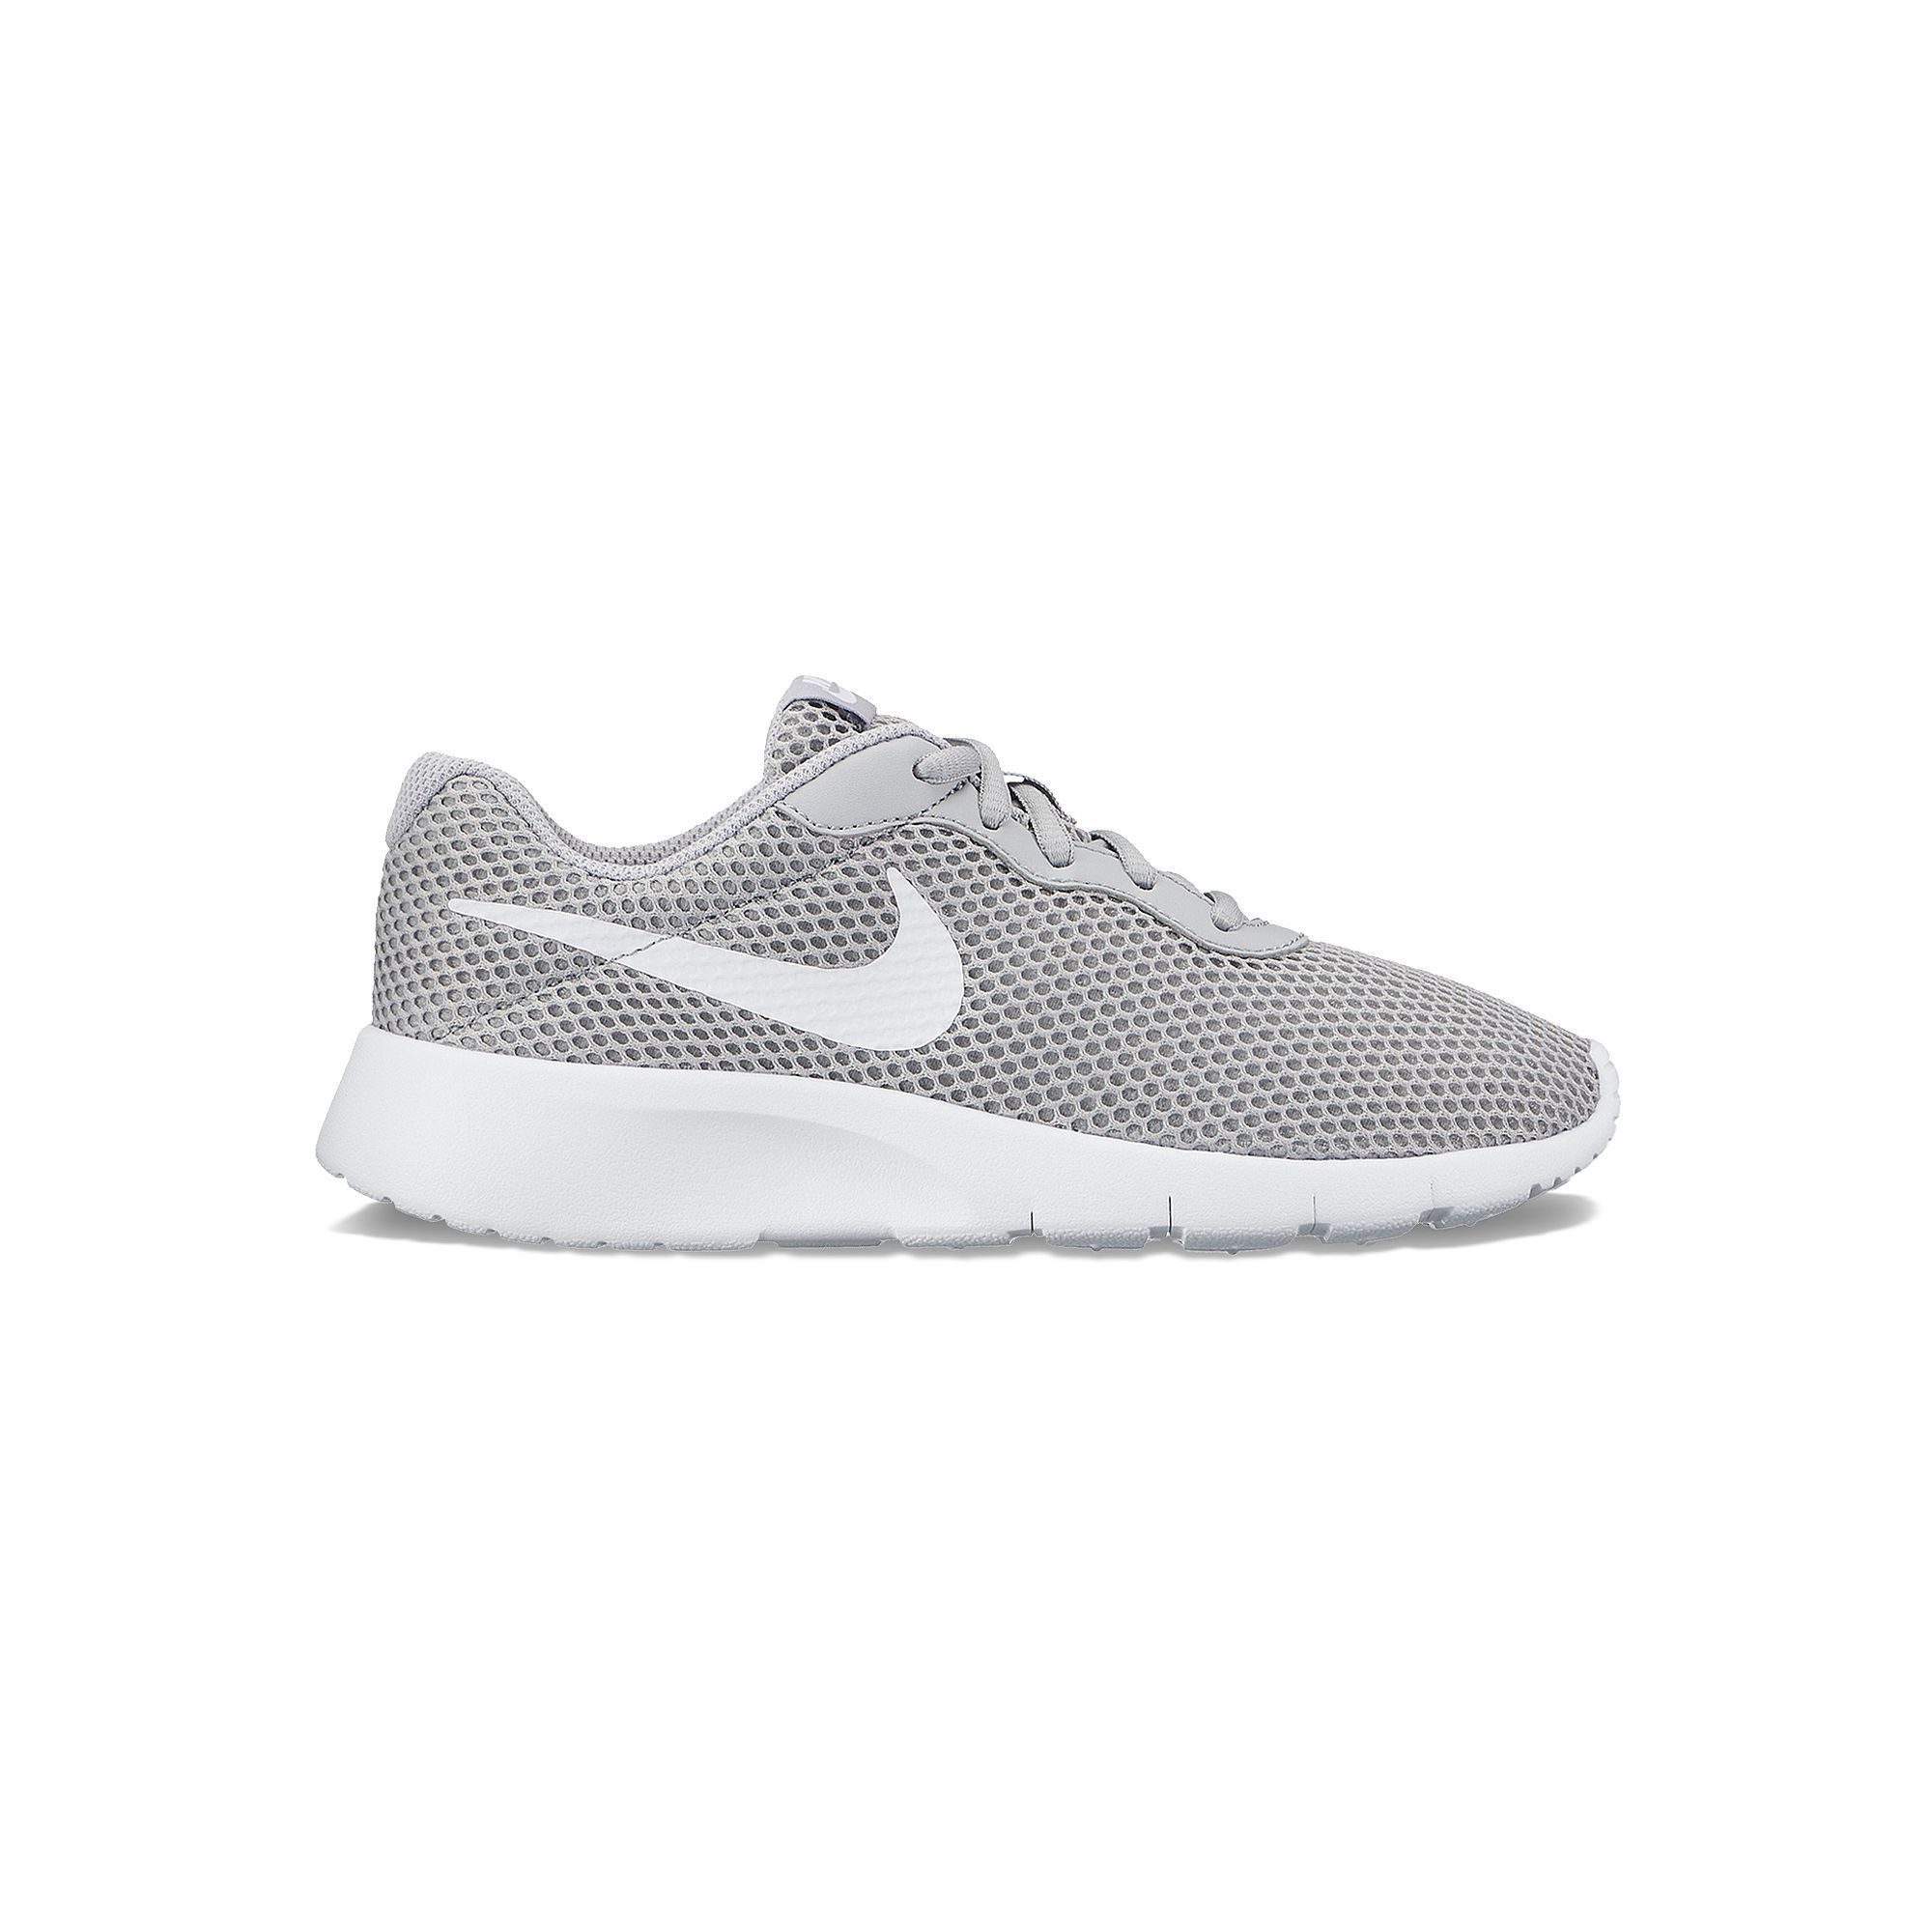 nike tanjun grade school girls' shoes nz